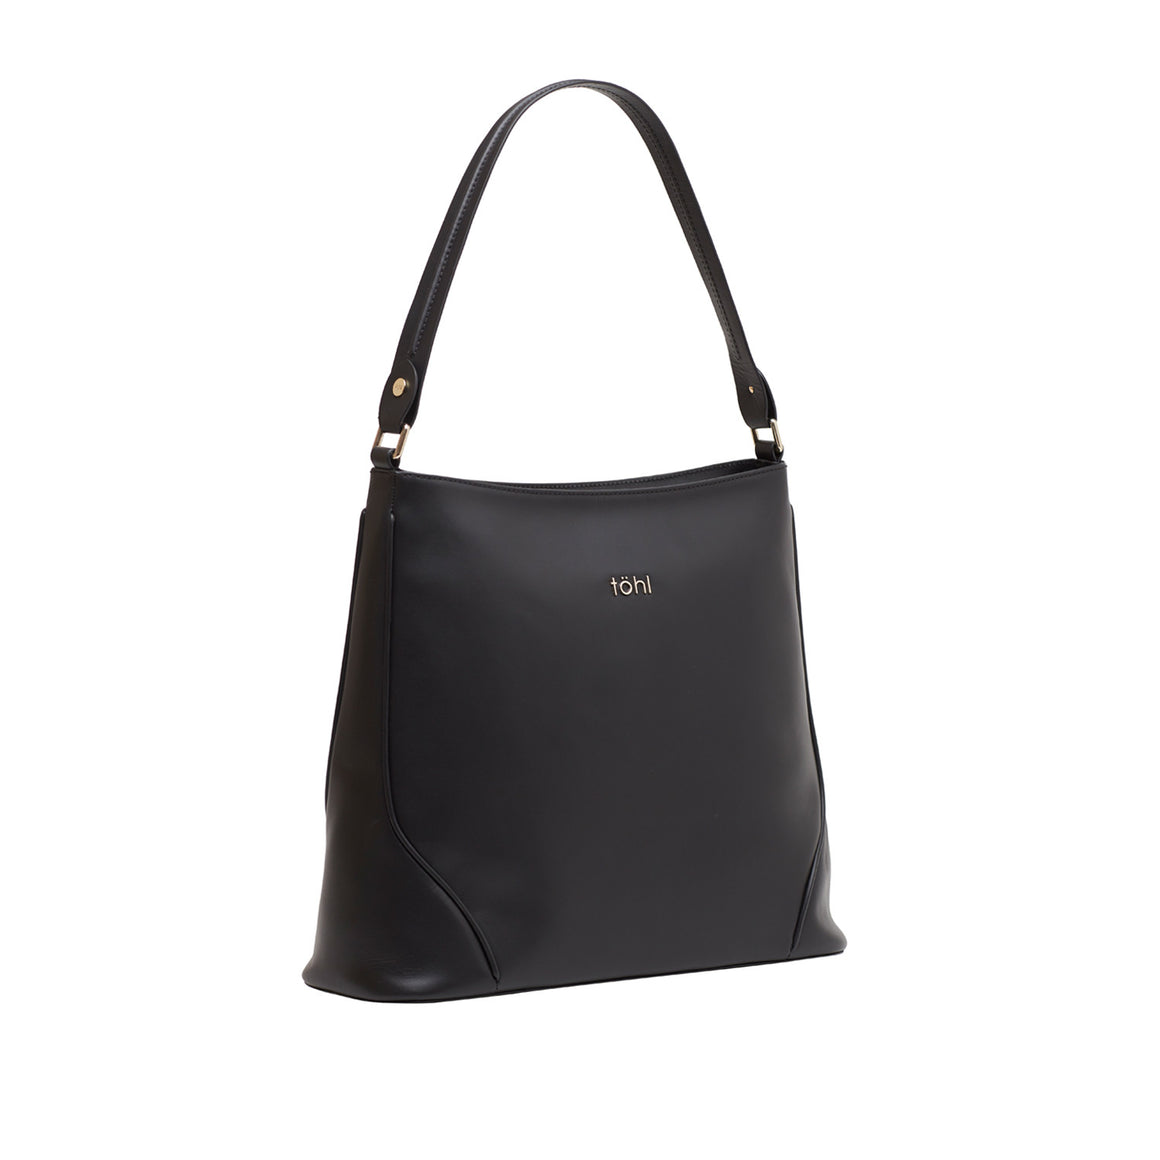 SB 0010 - TOHL ALEXA WOMEN'S SHOULDER BAG - CHARCOAL BLACK